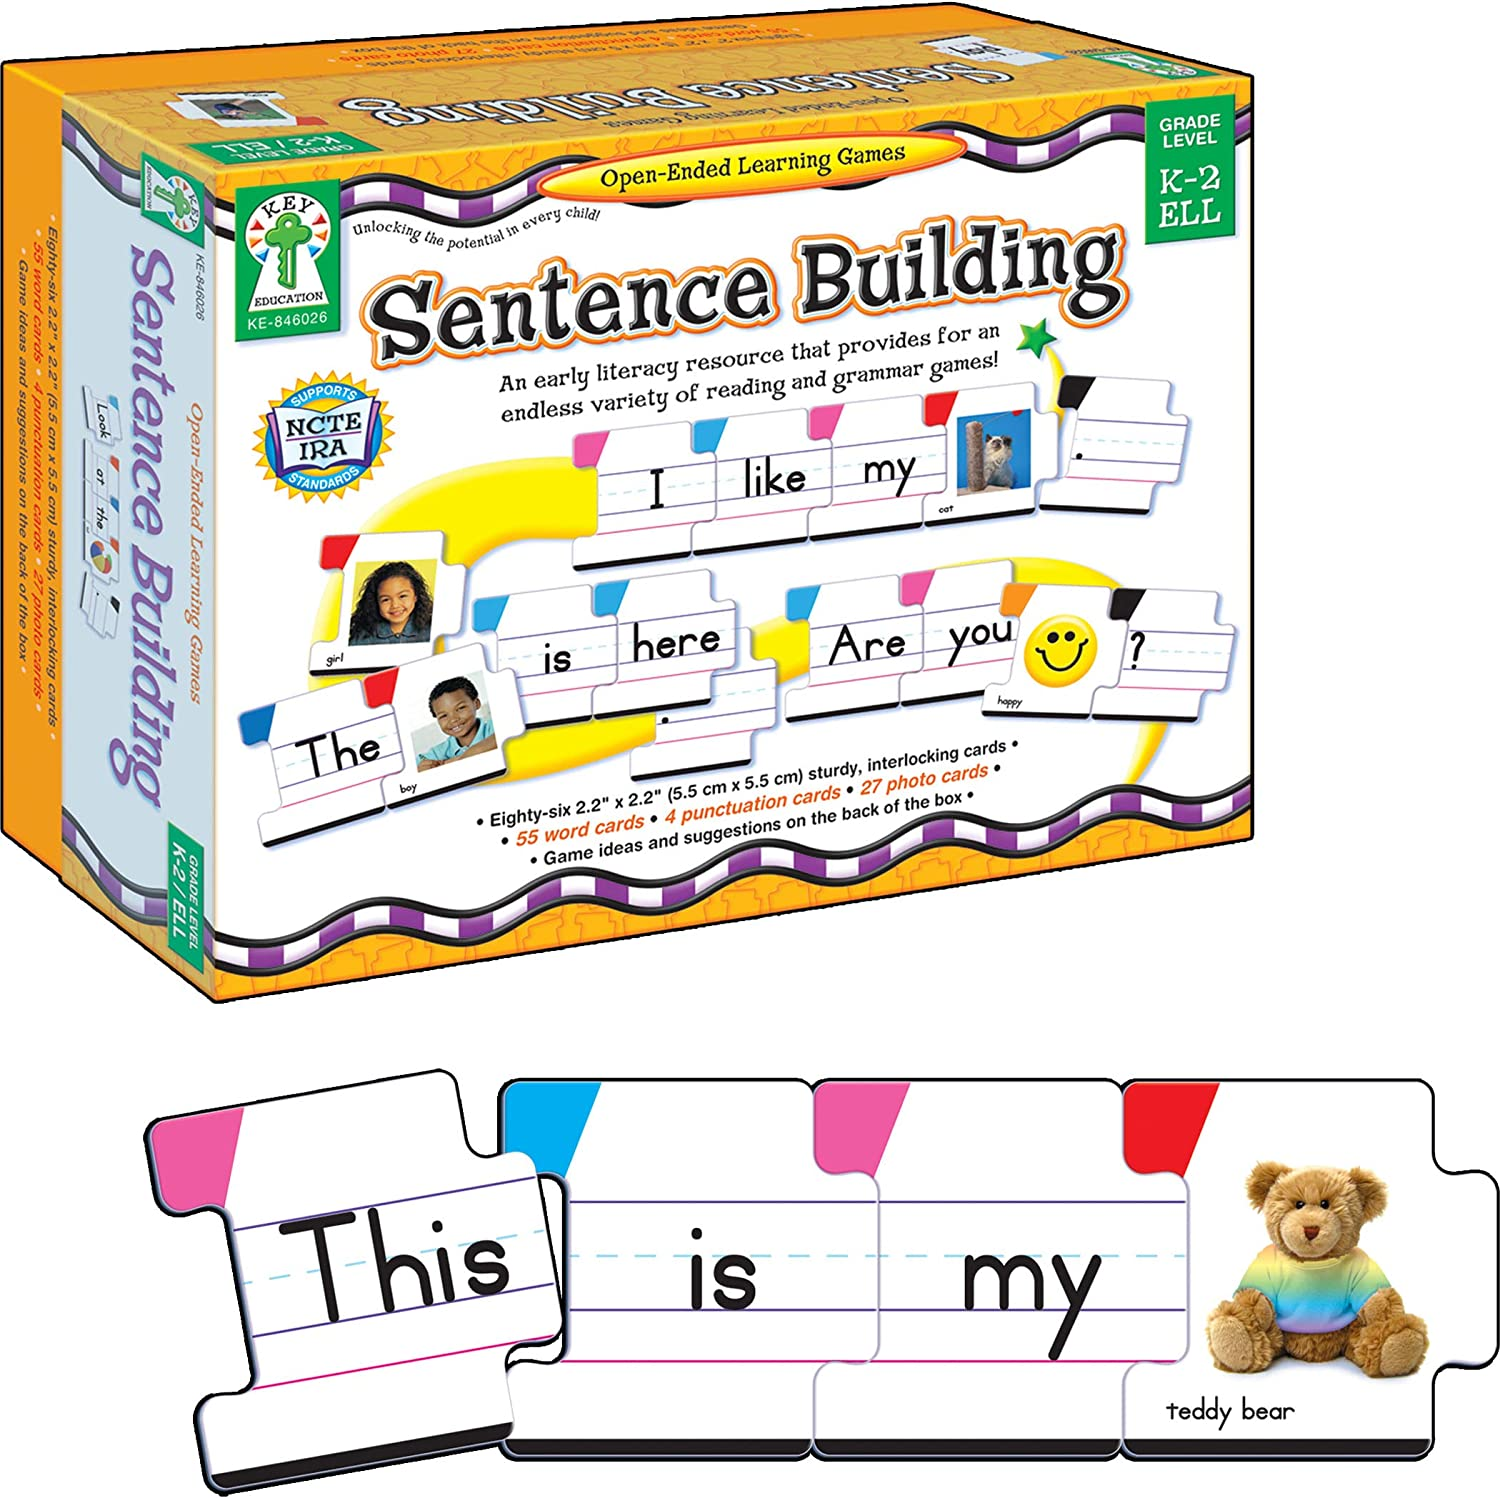 Carson Dellosa – Sentence Building Literacy Resource board game for reading fluency